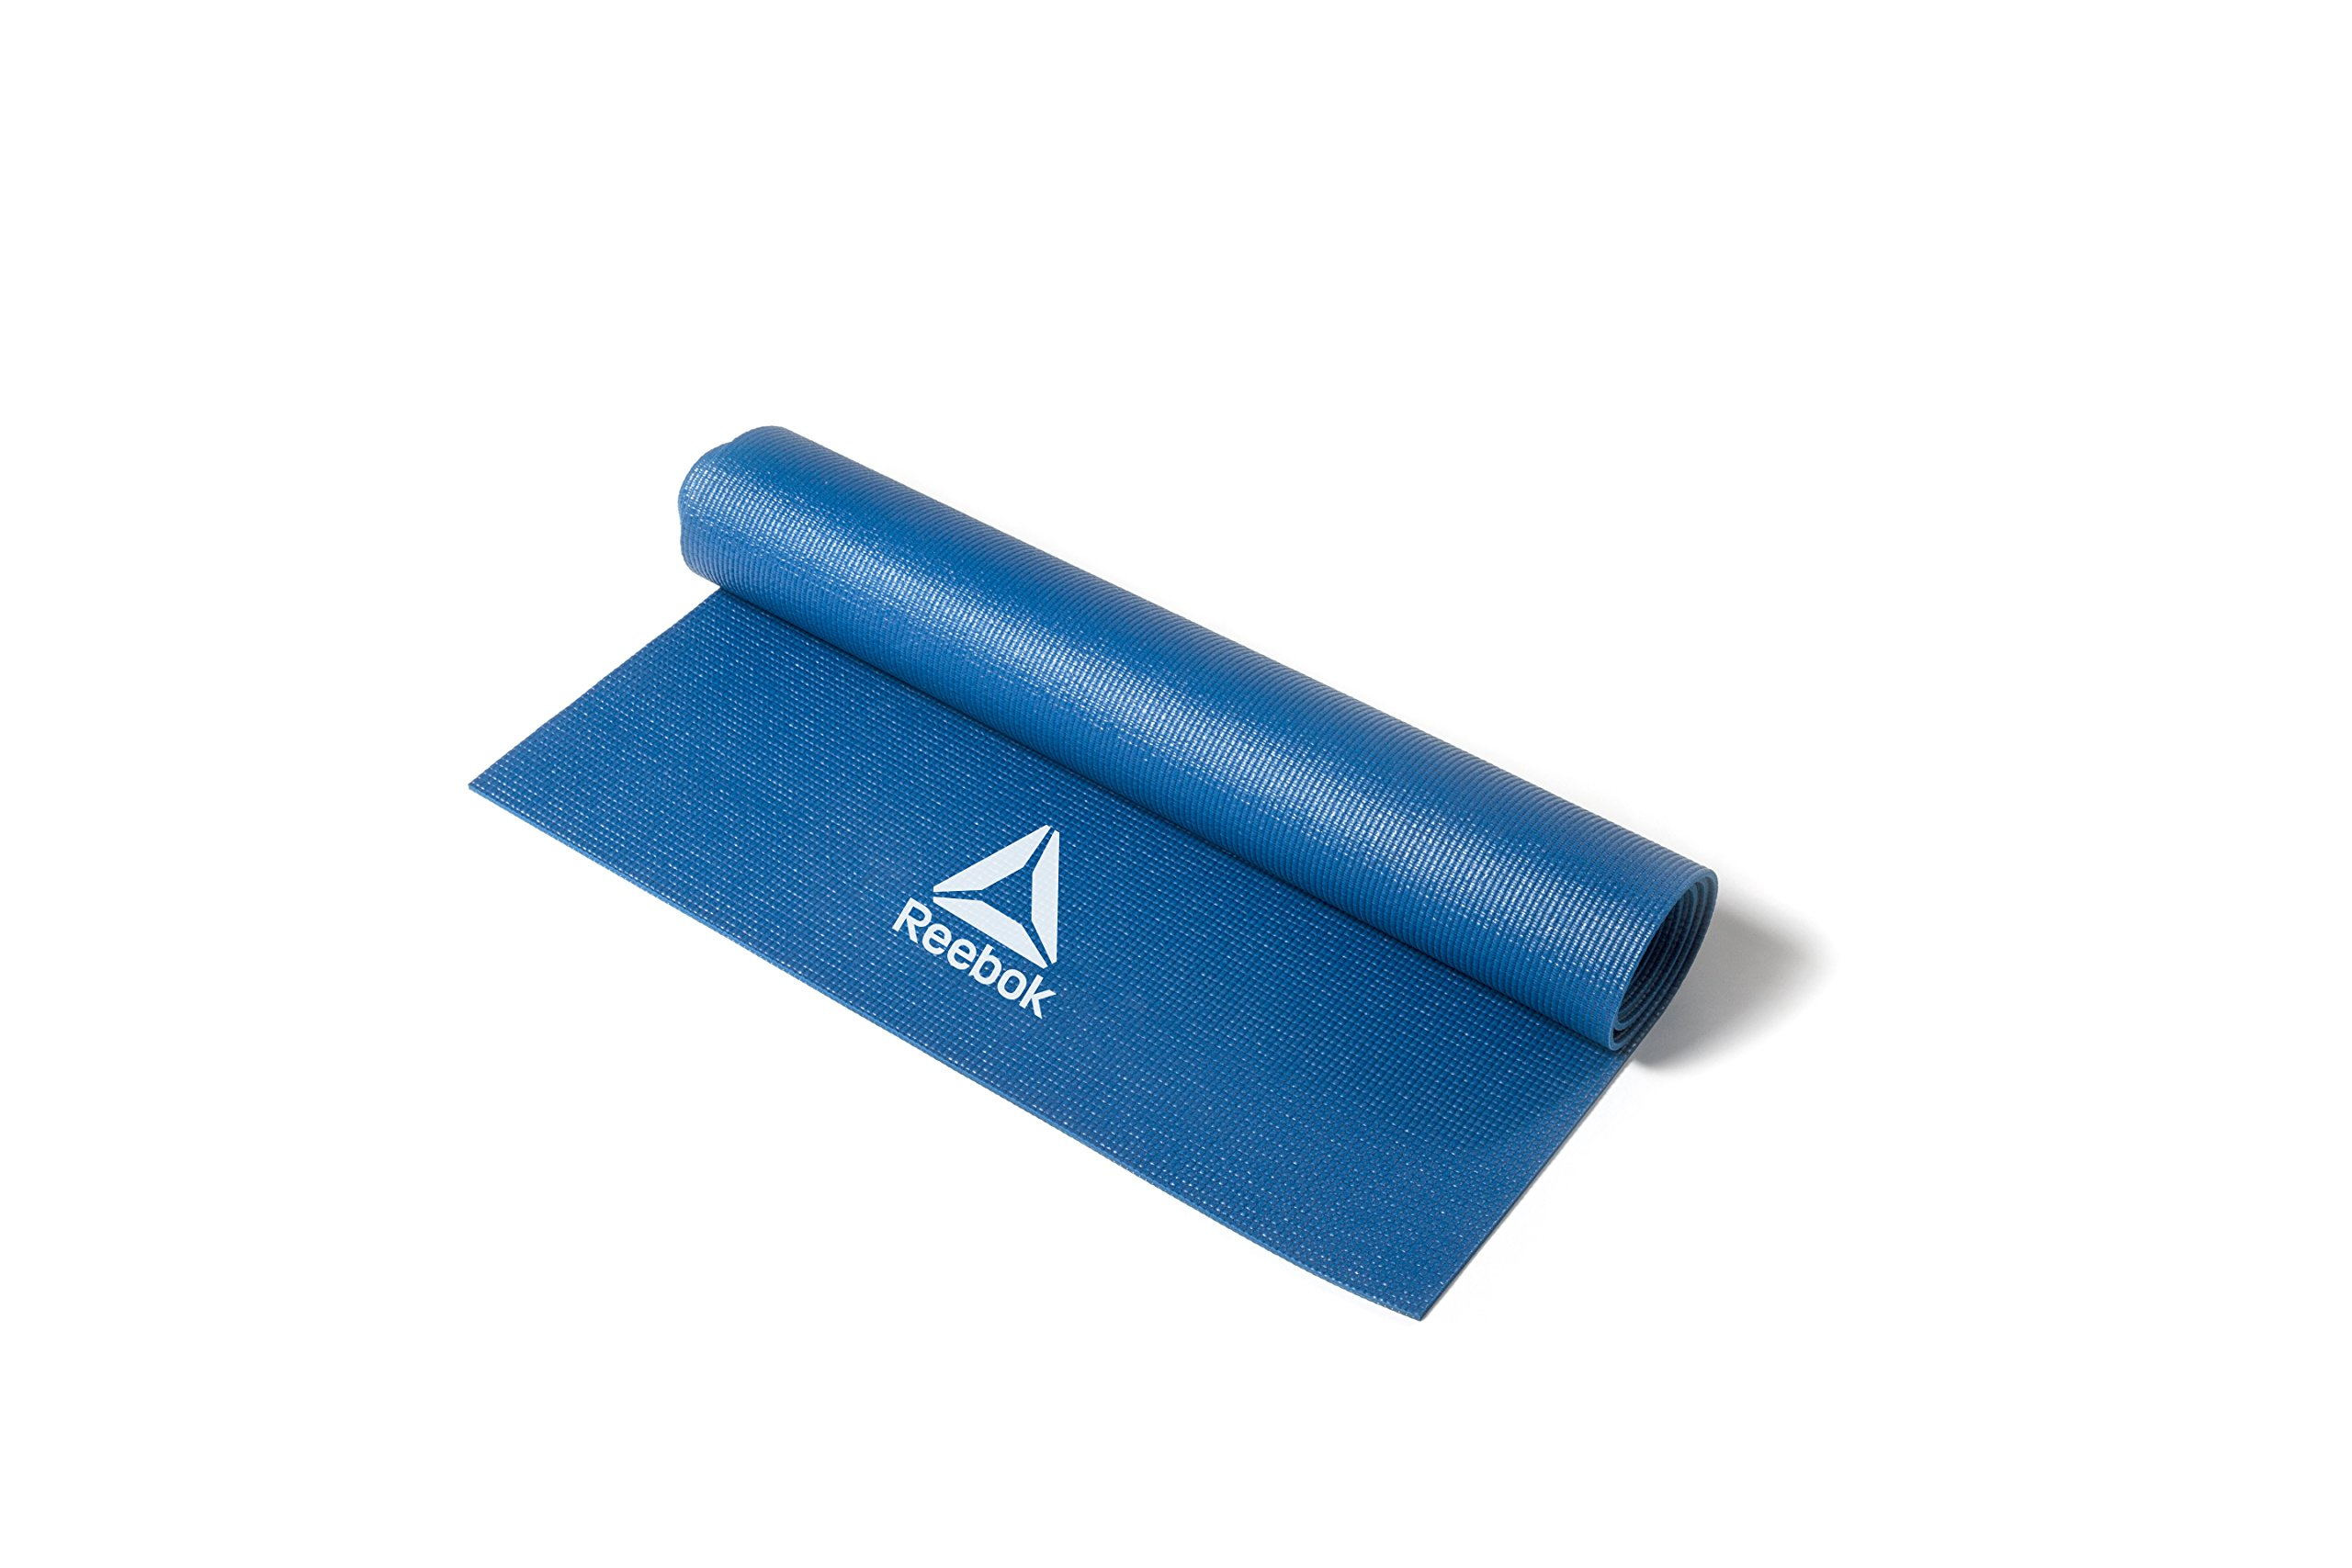 Reebok yoga mat 4mm Blue RAYG-11022BL [fitness training Pilates diet] by Reebok (Image #2)